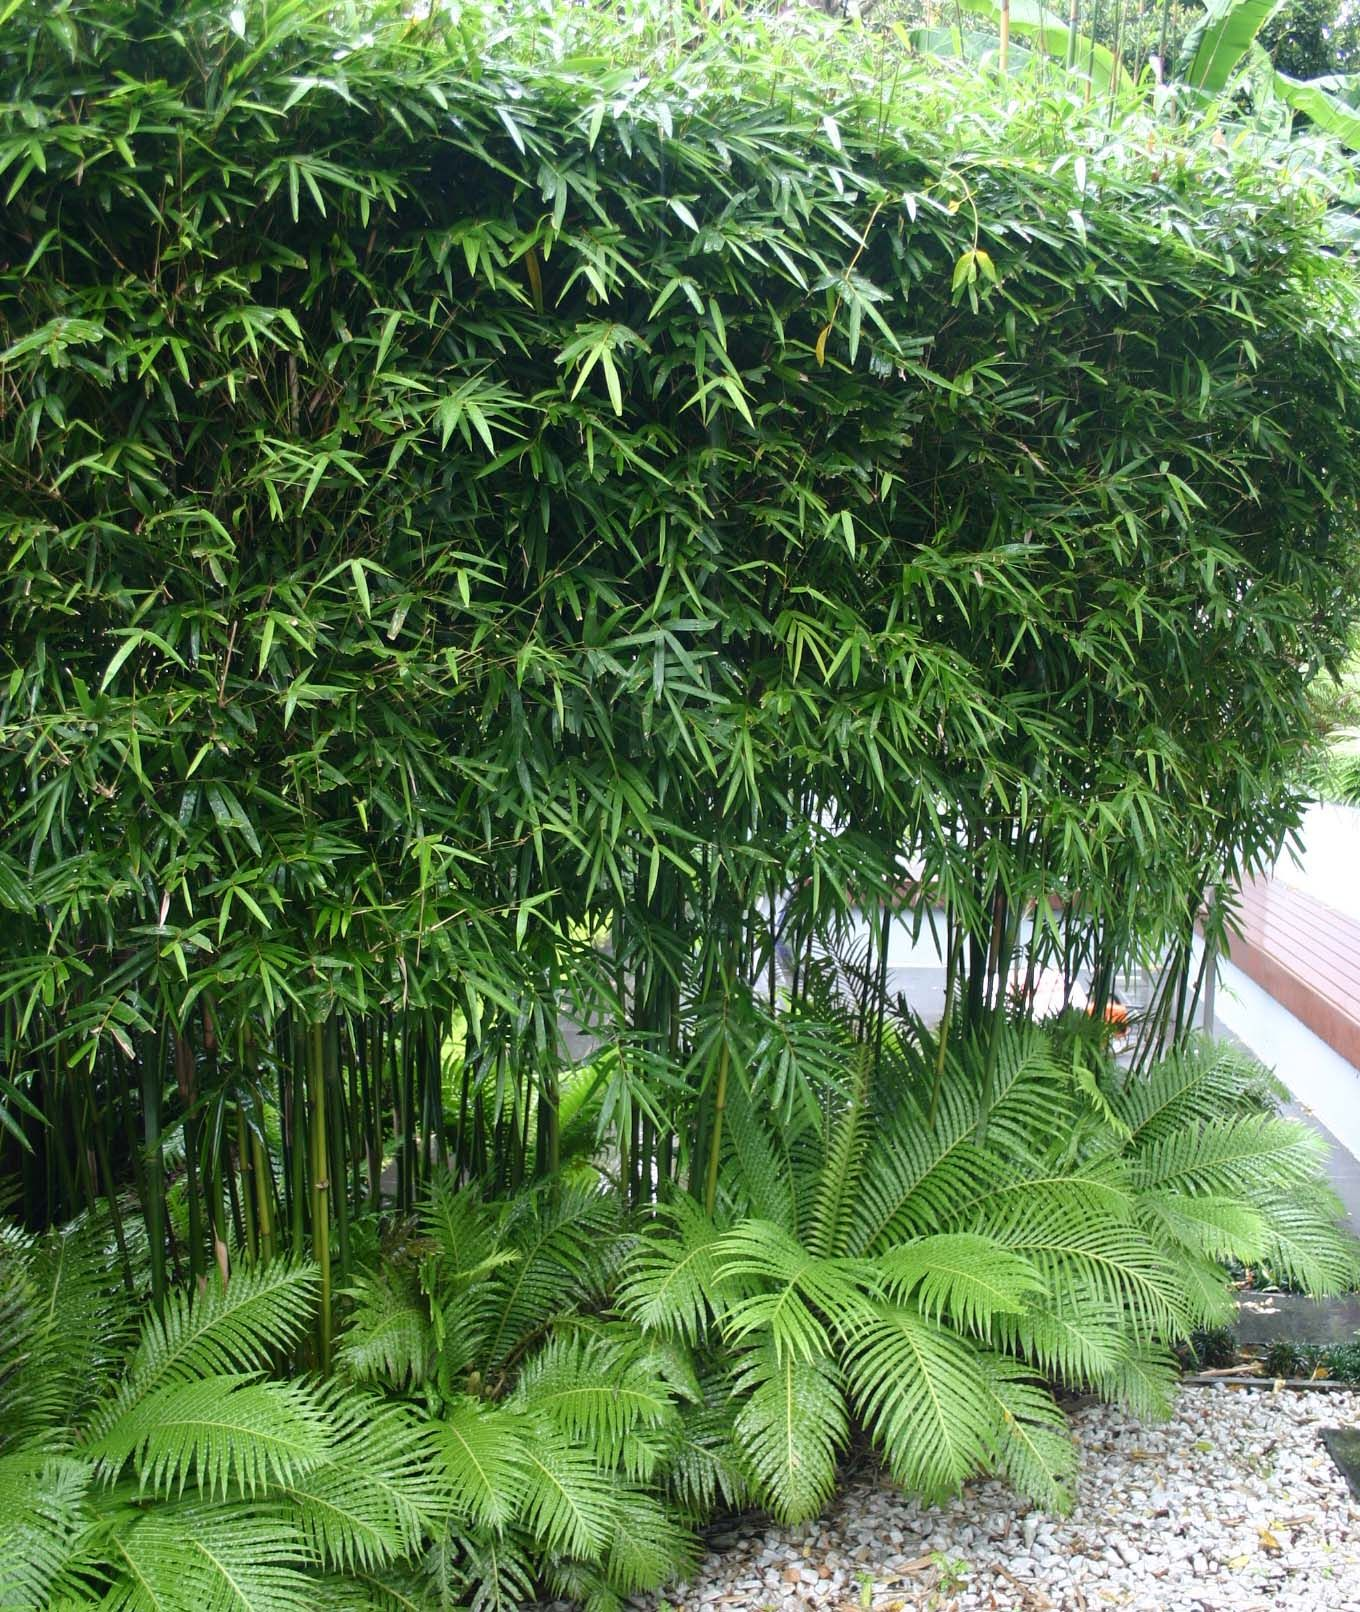 Planting For Privacy Bamboo Garden Tropical Garden Privacy Plants